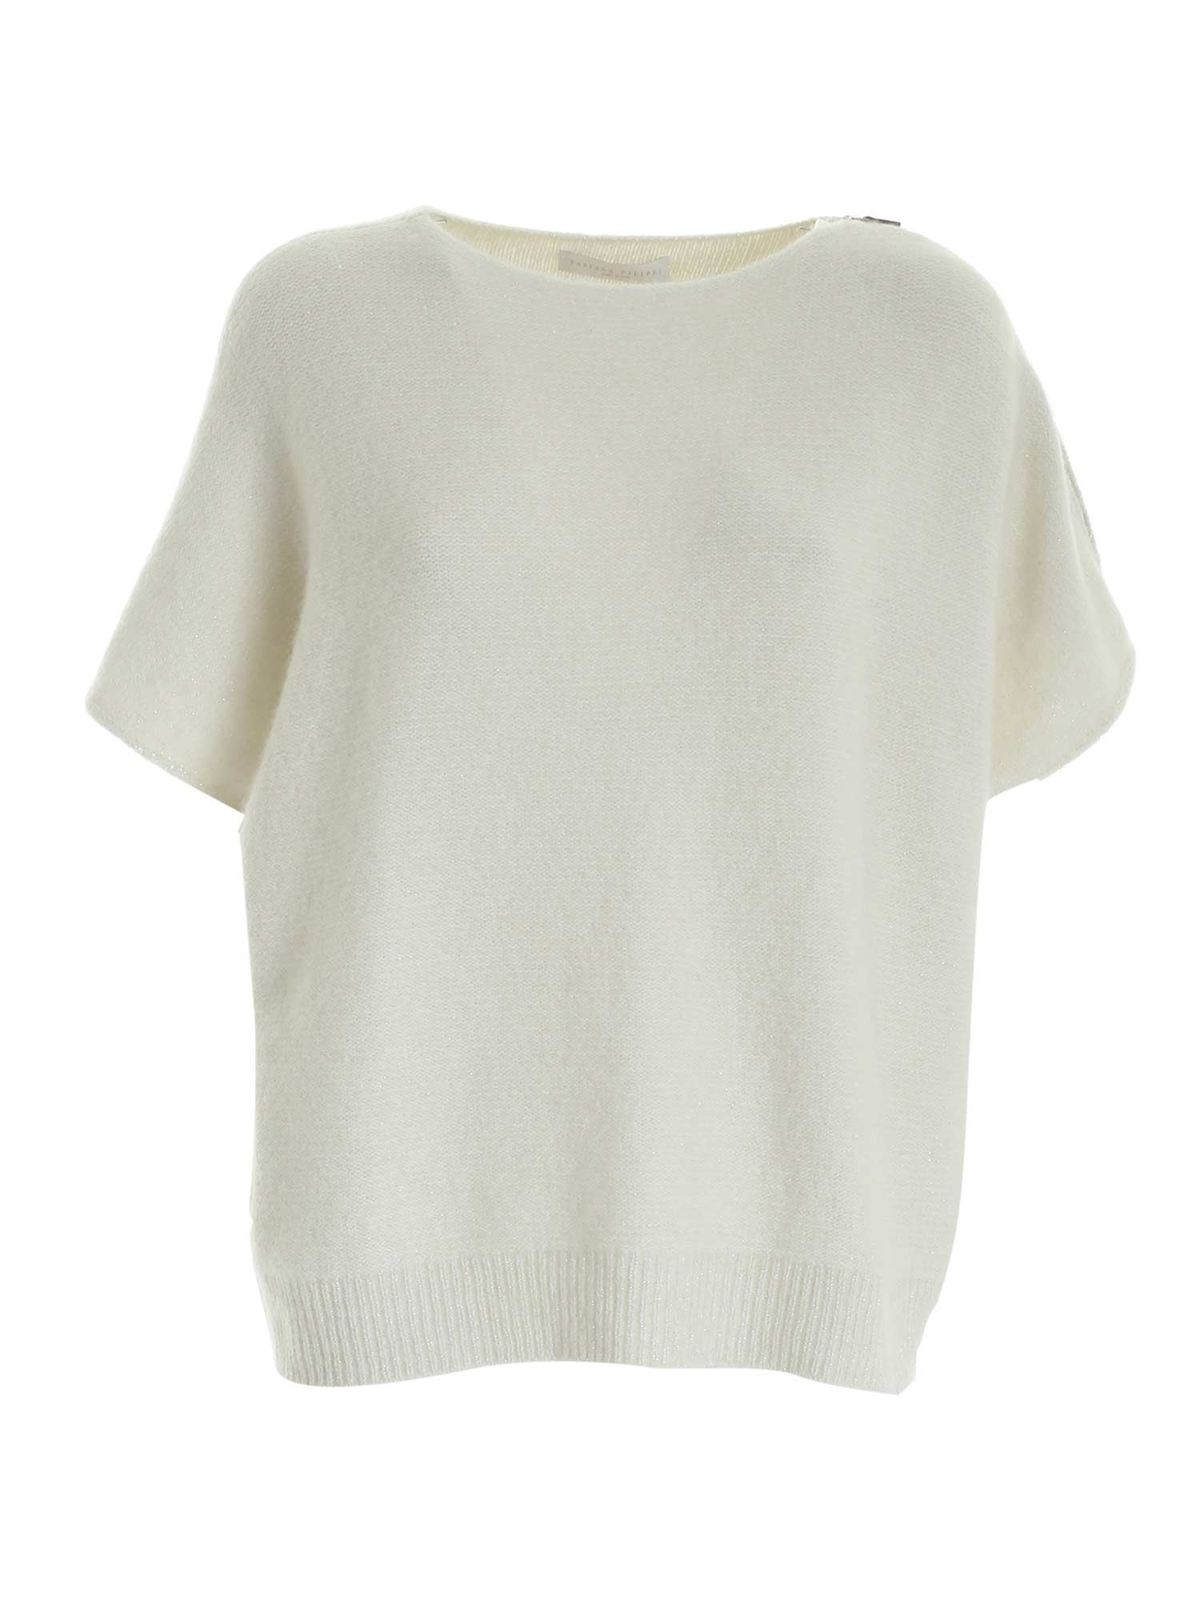 Fabiana Filippi SILVER LAME PULLOVER IN CREAM COLOR